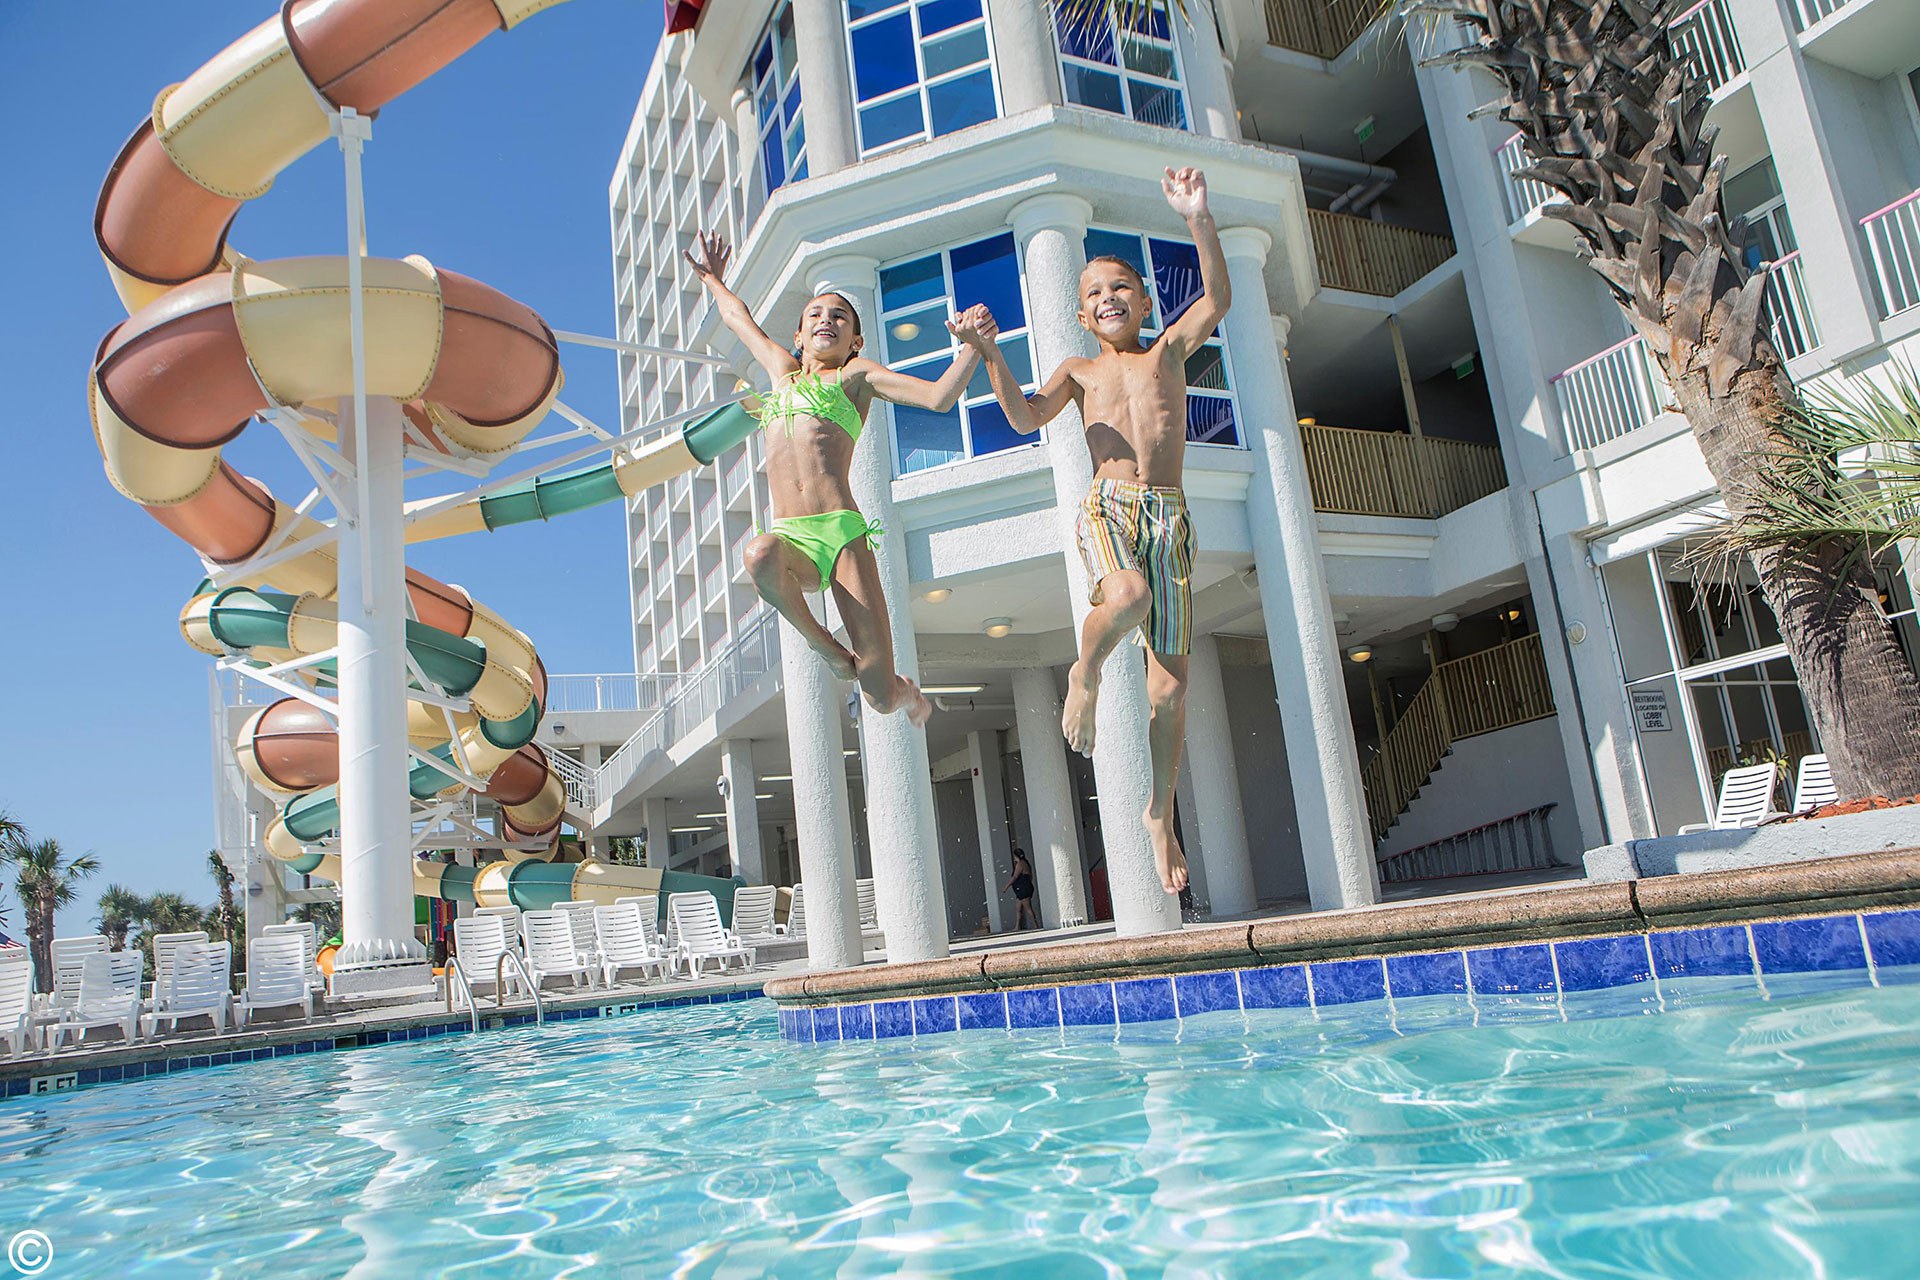 Crown Reef Resort and Waterpark in Myrtle Beach, South Carolina; Courtesy of Crown Reef Resort and Waterpark